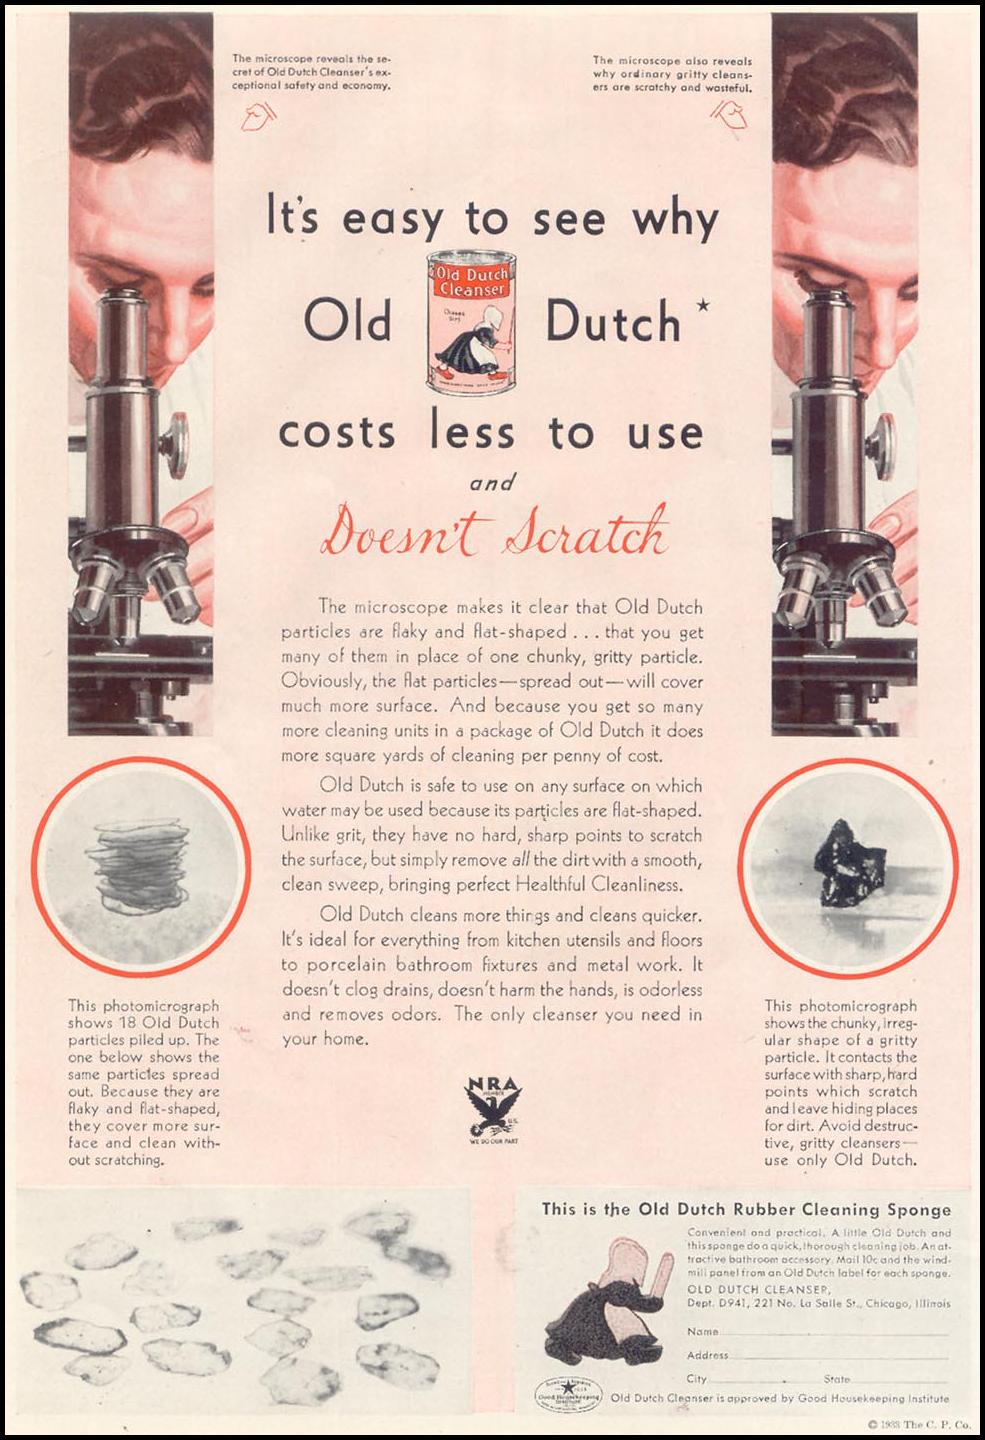 OLD DUTCH CLEANSER GOOD HOUSEKEEPING 11/01/1933